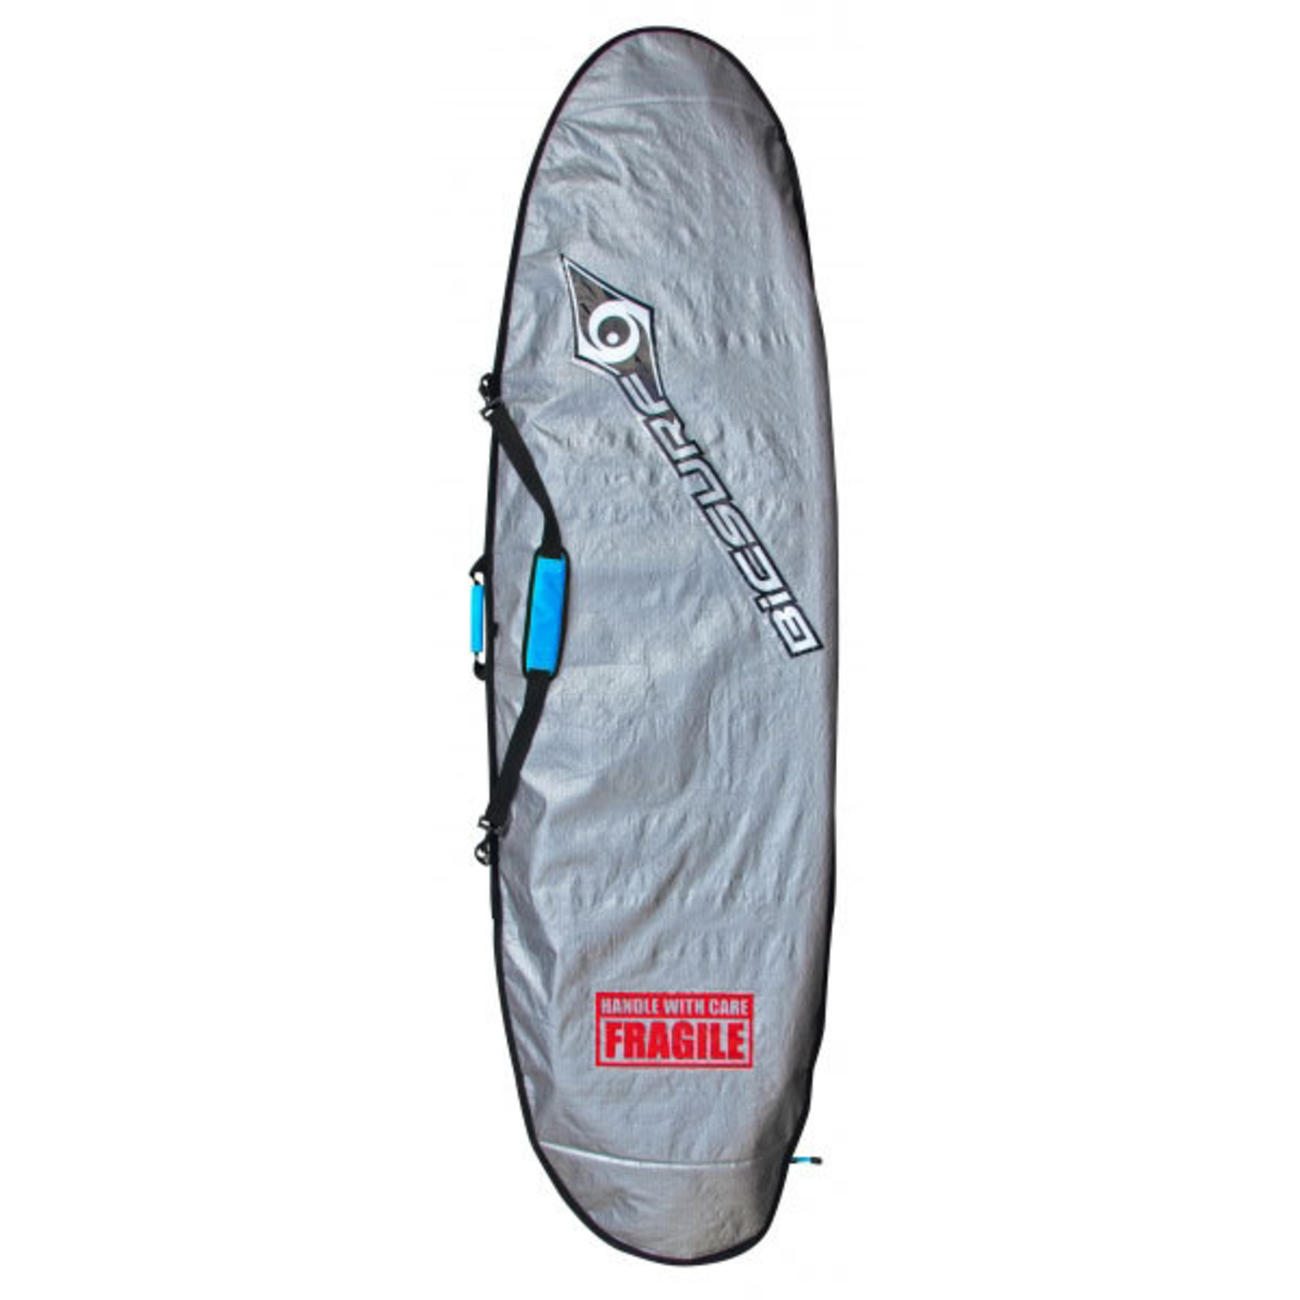 SURF BOARD BAG 7'9